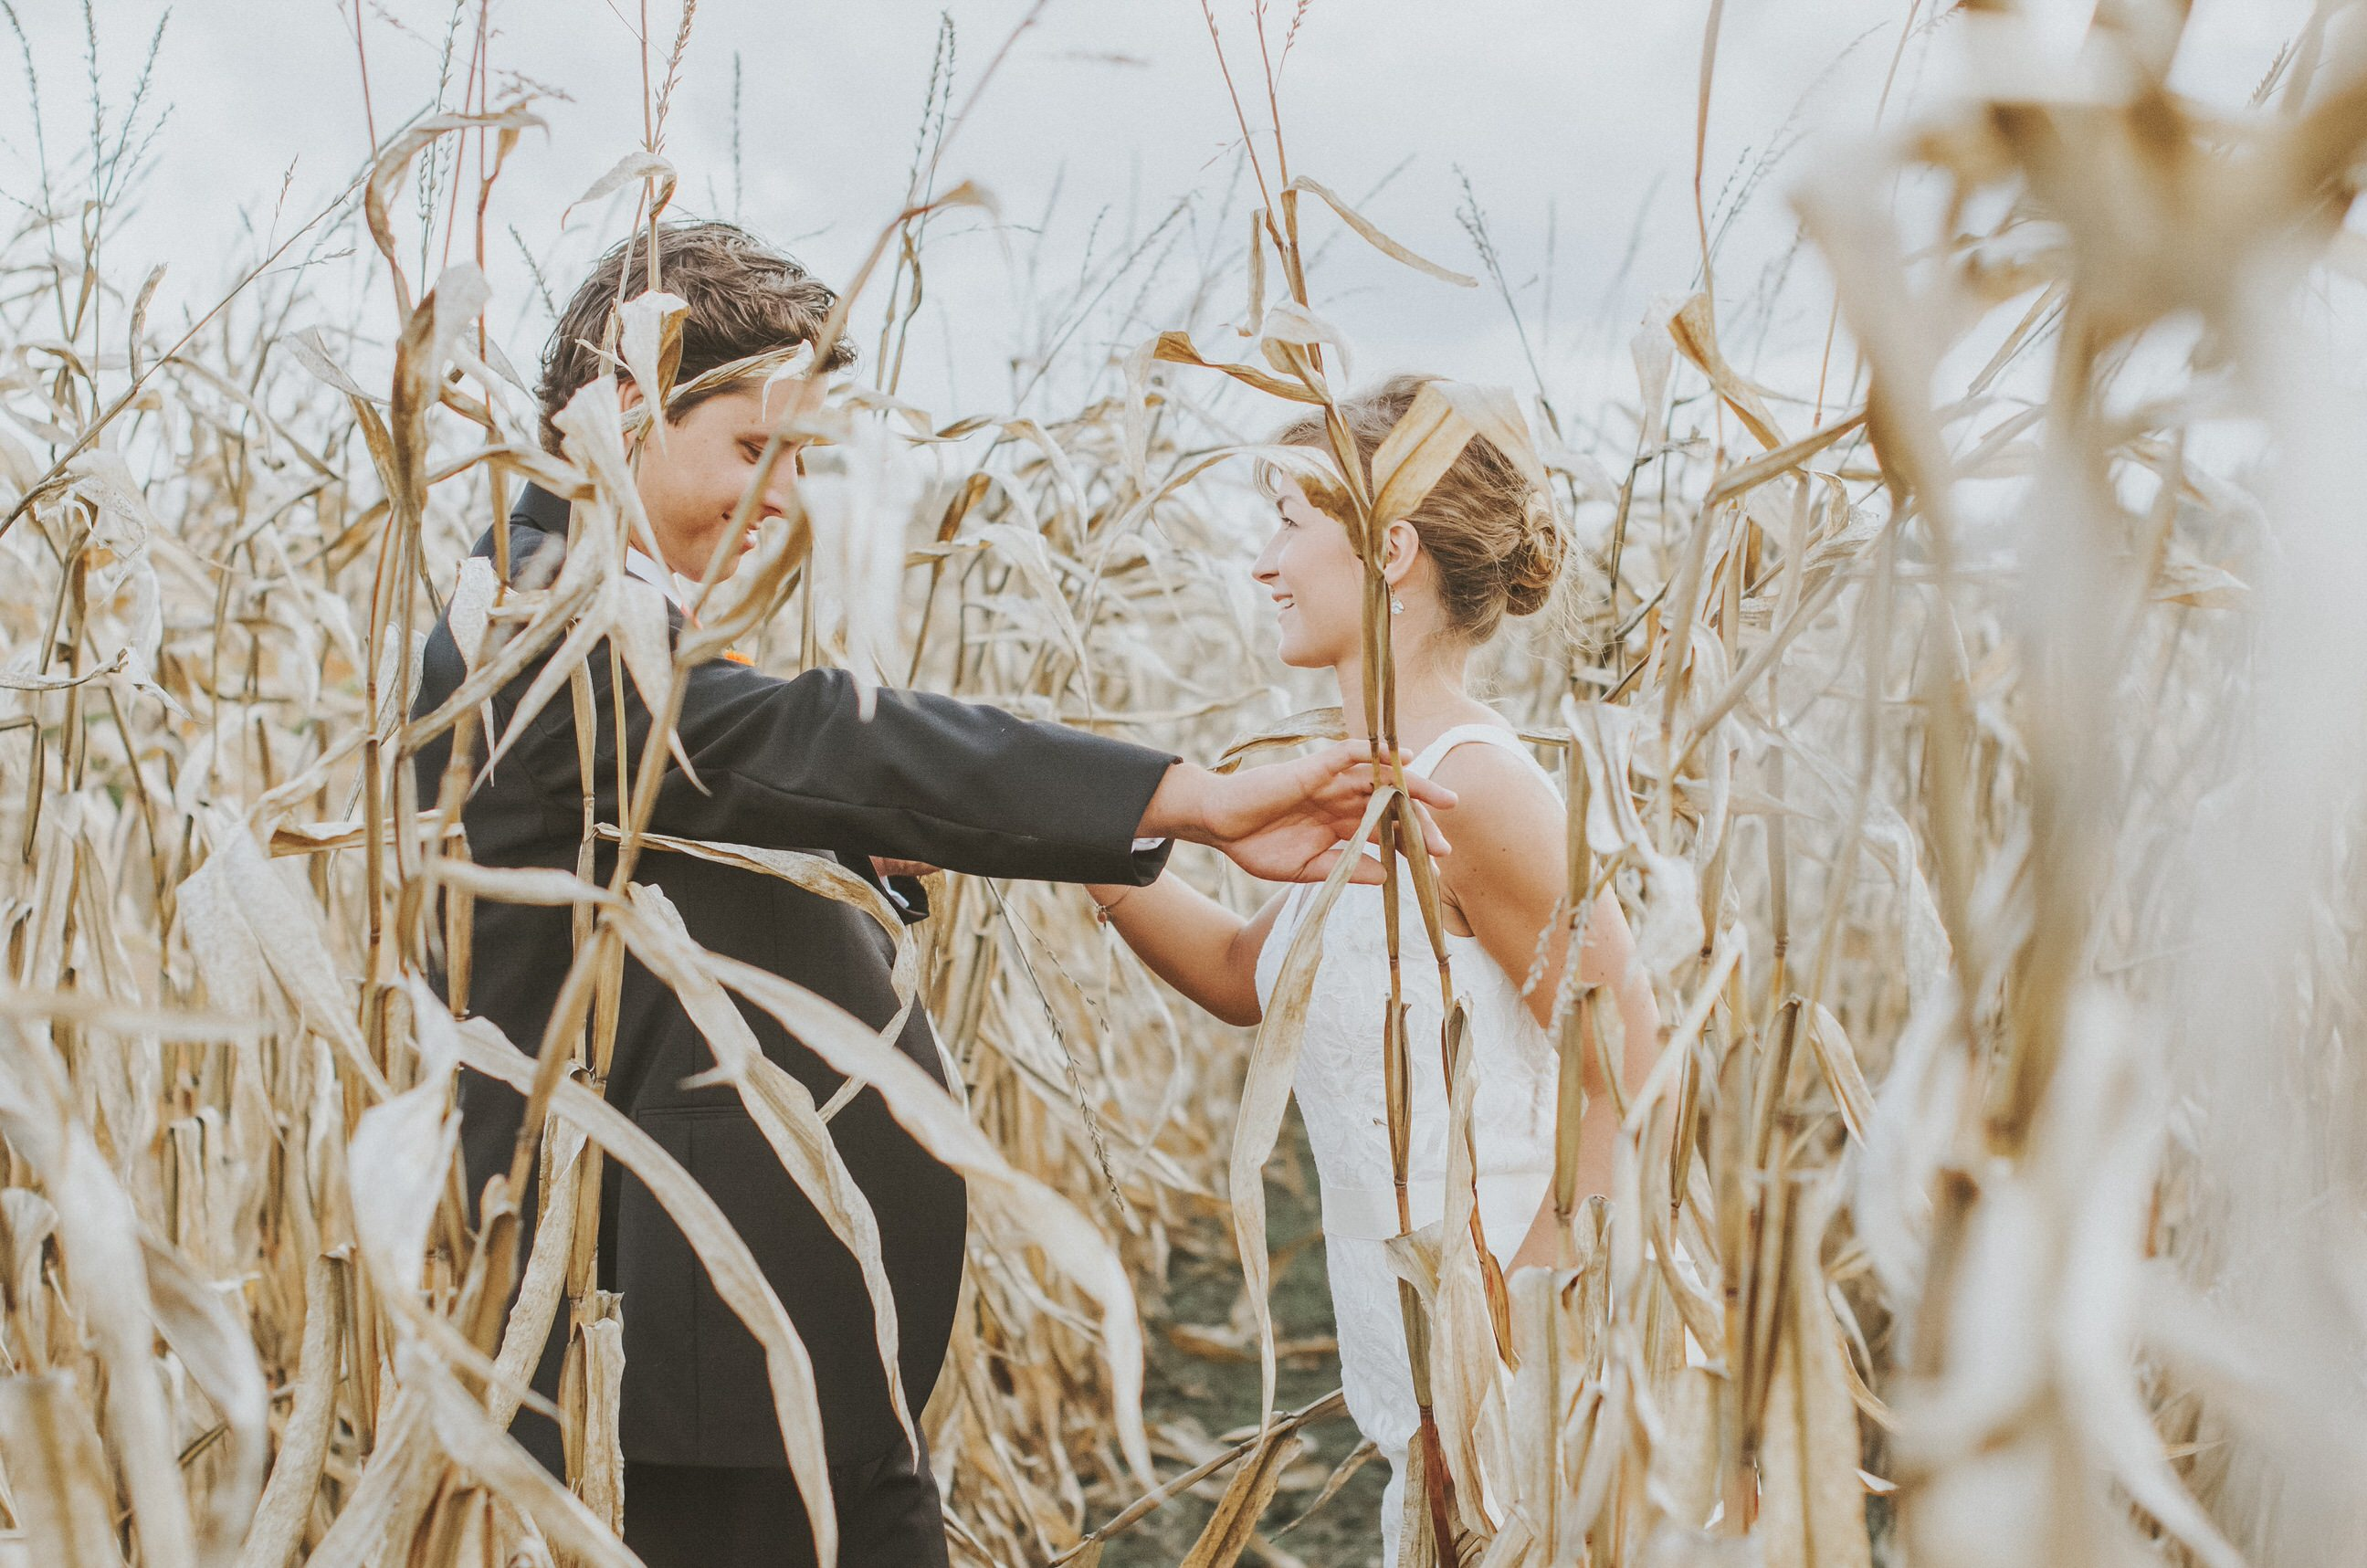 A couple's portrait of the newlyweds Erin and Jesse Birden in a farm field in Newtown, CT